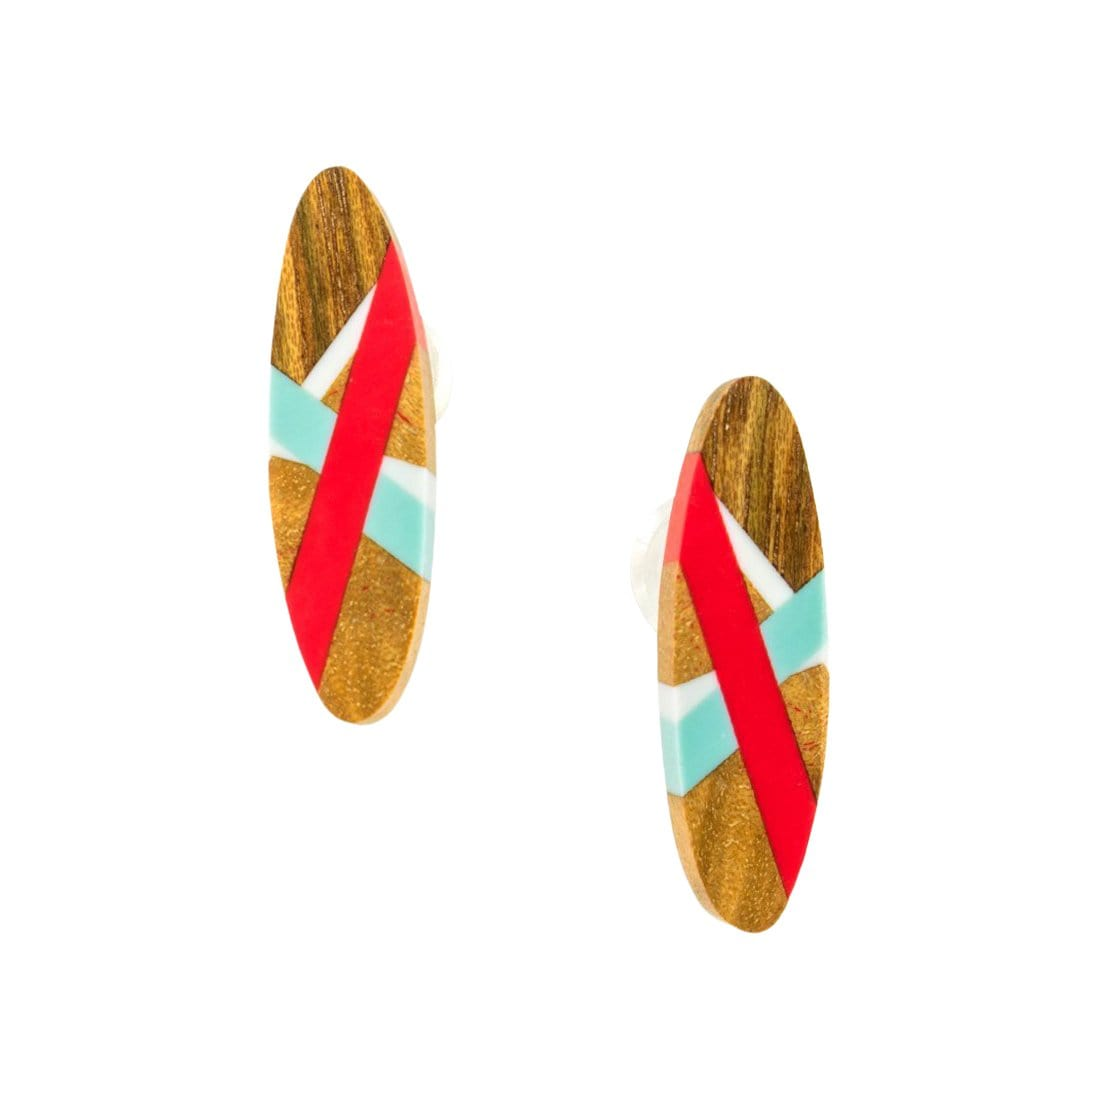 Laura Jaklitsch Jewelry Earrings Maple and Tasmanian Blackwood with Red/Aqua Inlay Stud Earrings